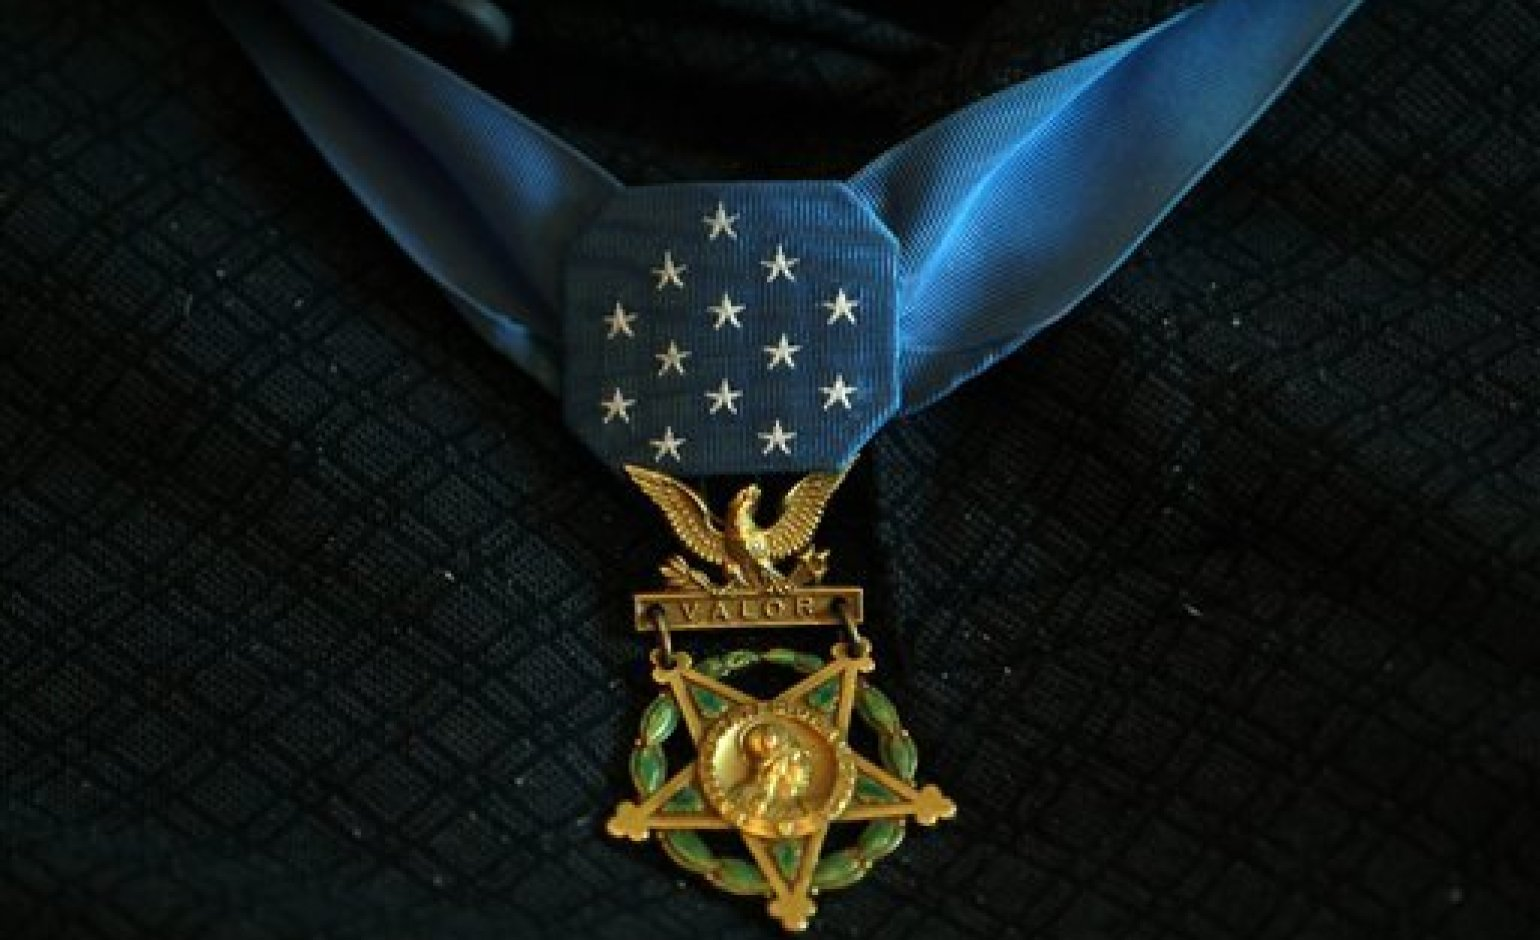 A very Delta Force